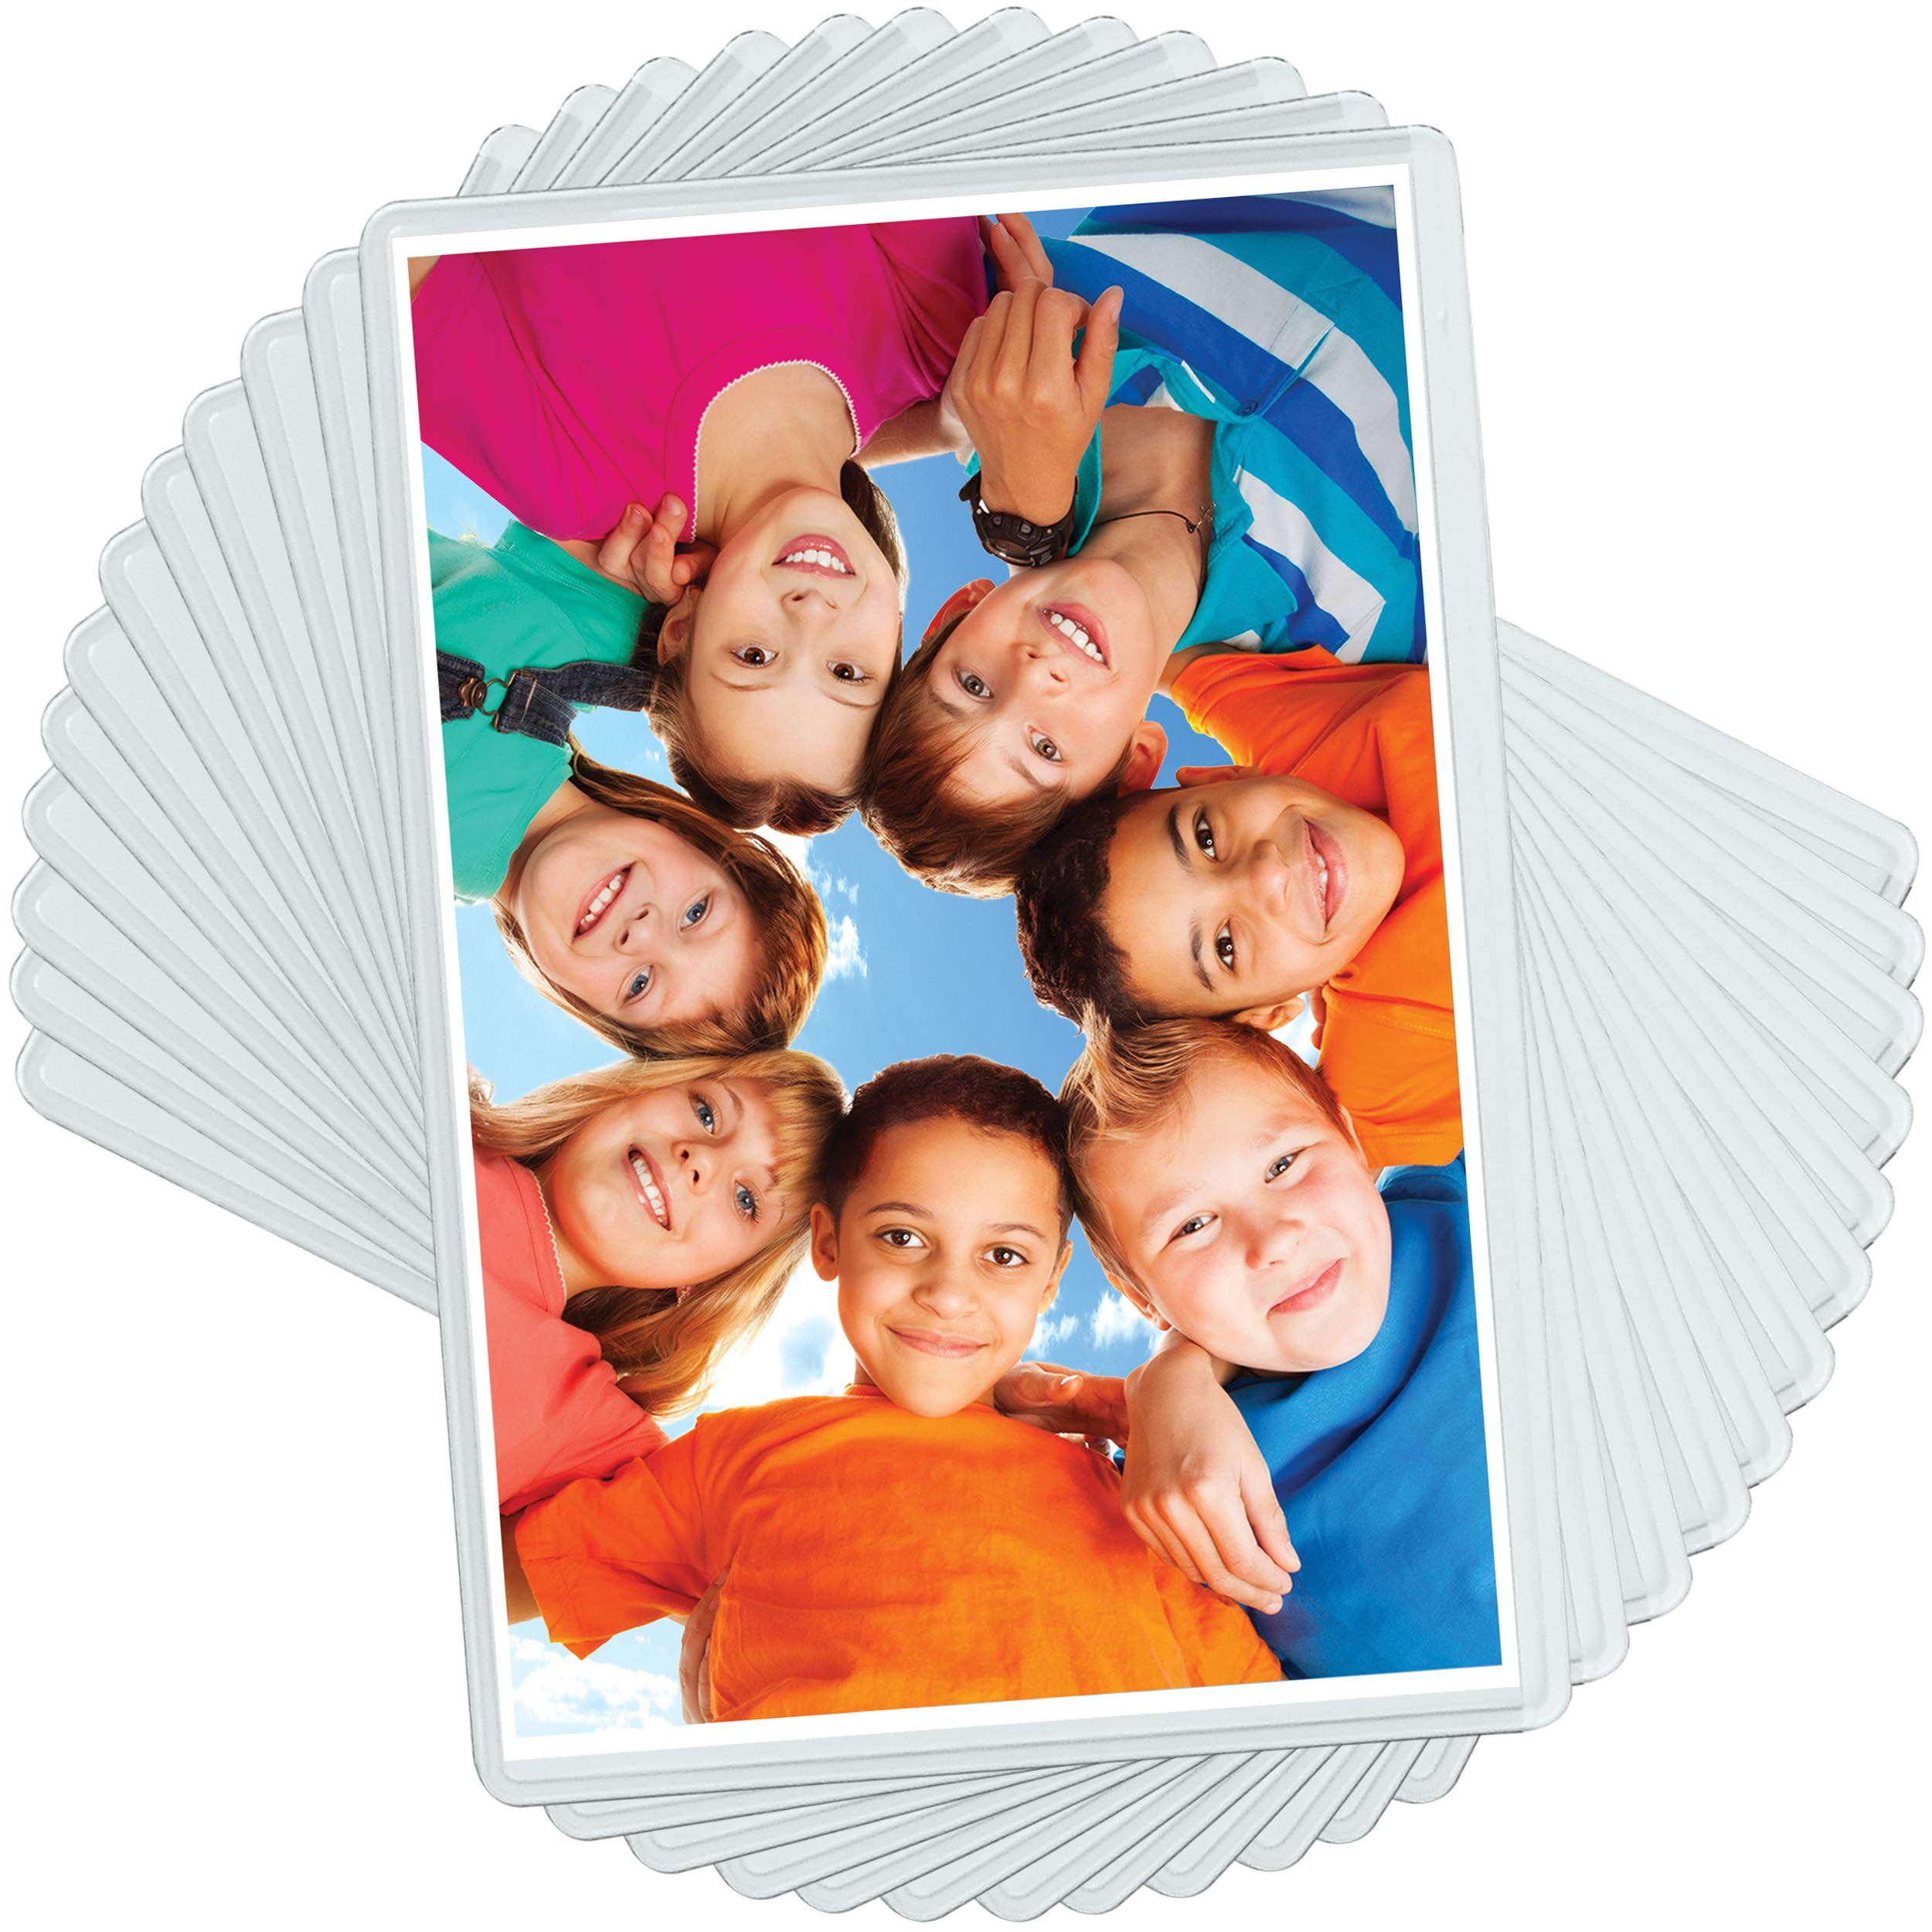 20 Pack 4x6 Magnetic Picture Frames for 4 X 6 Inch Photo Plastic Refrigerator Insert Holder Sleeve Pocket by Freez-a-frame Made in The USA by Freeze A Frame